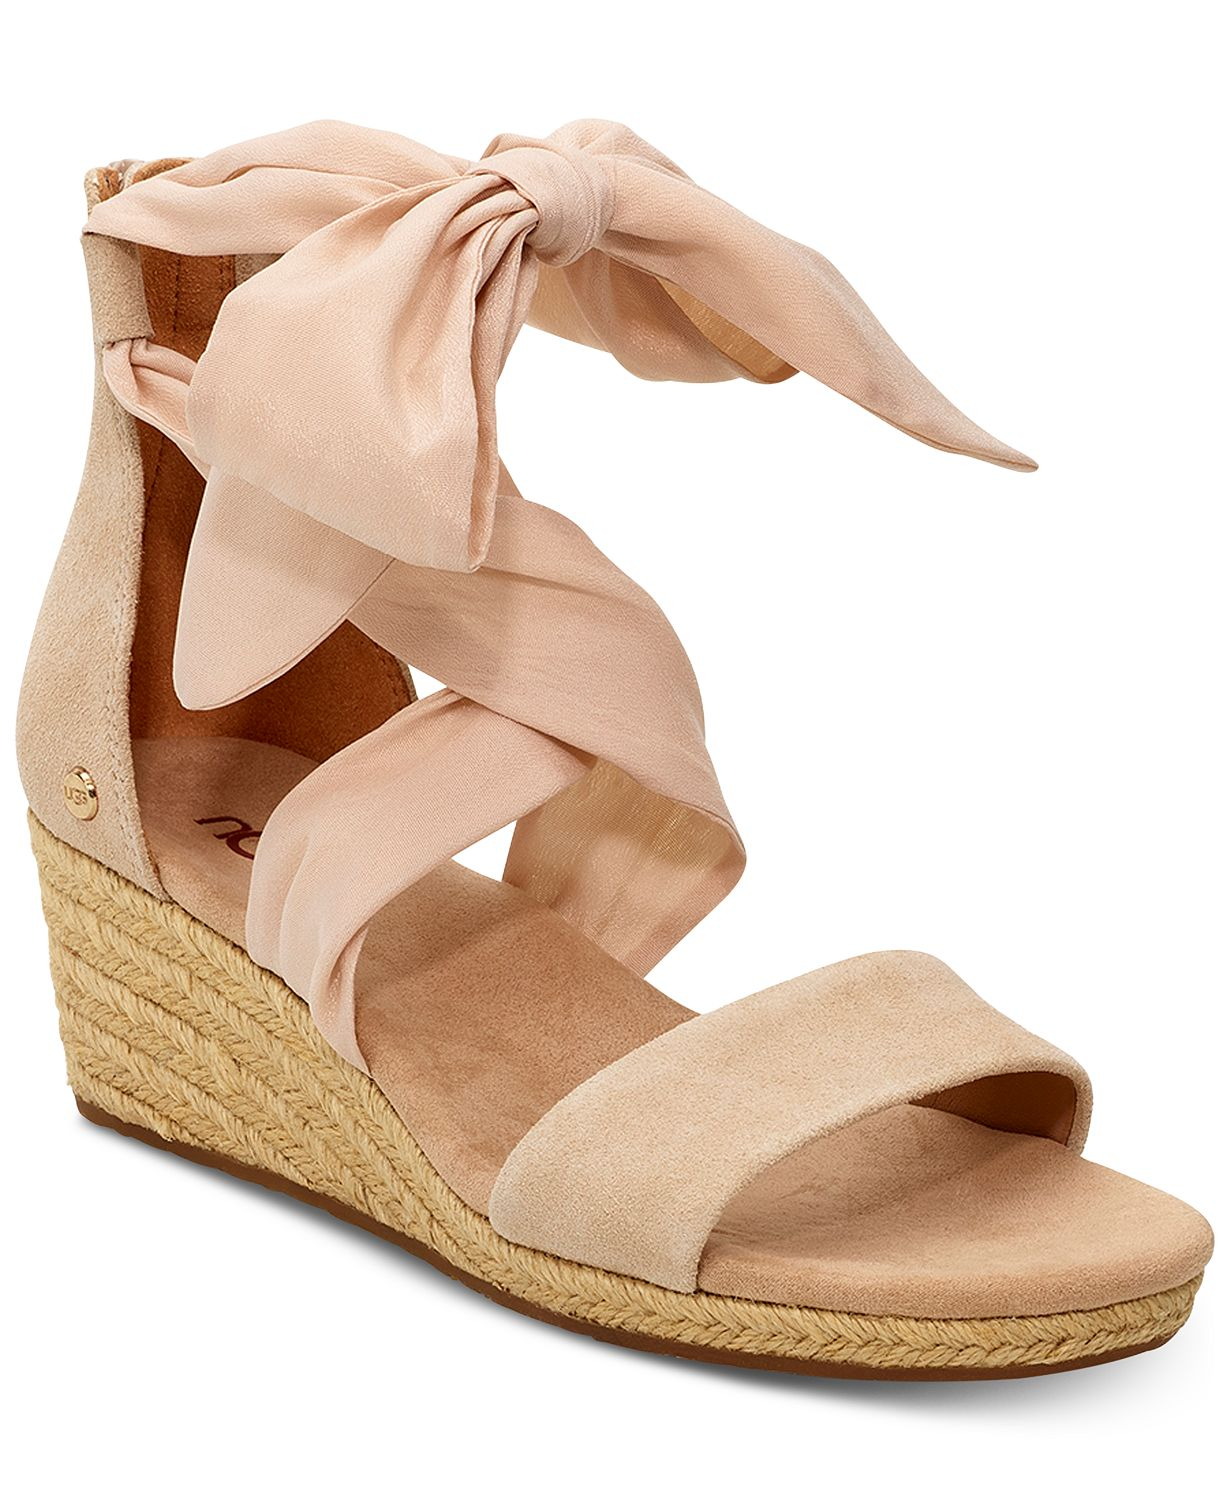 Nude Ugg wedge sandals